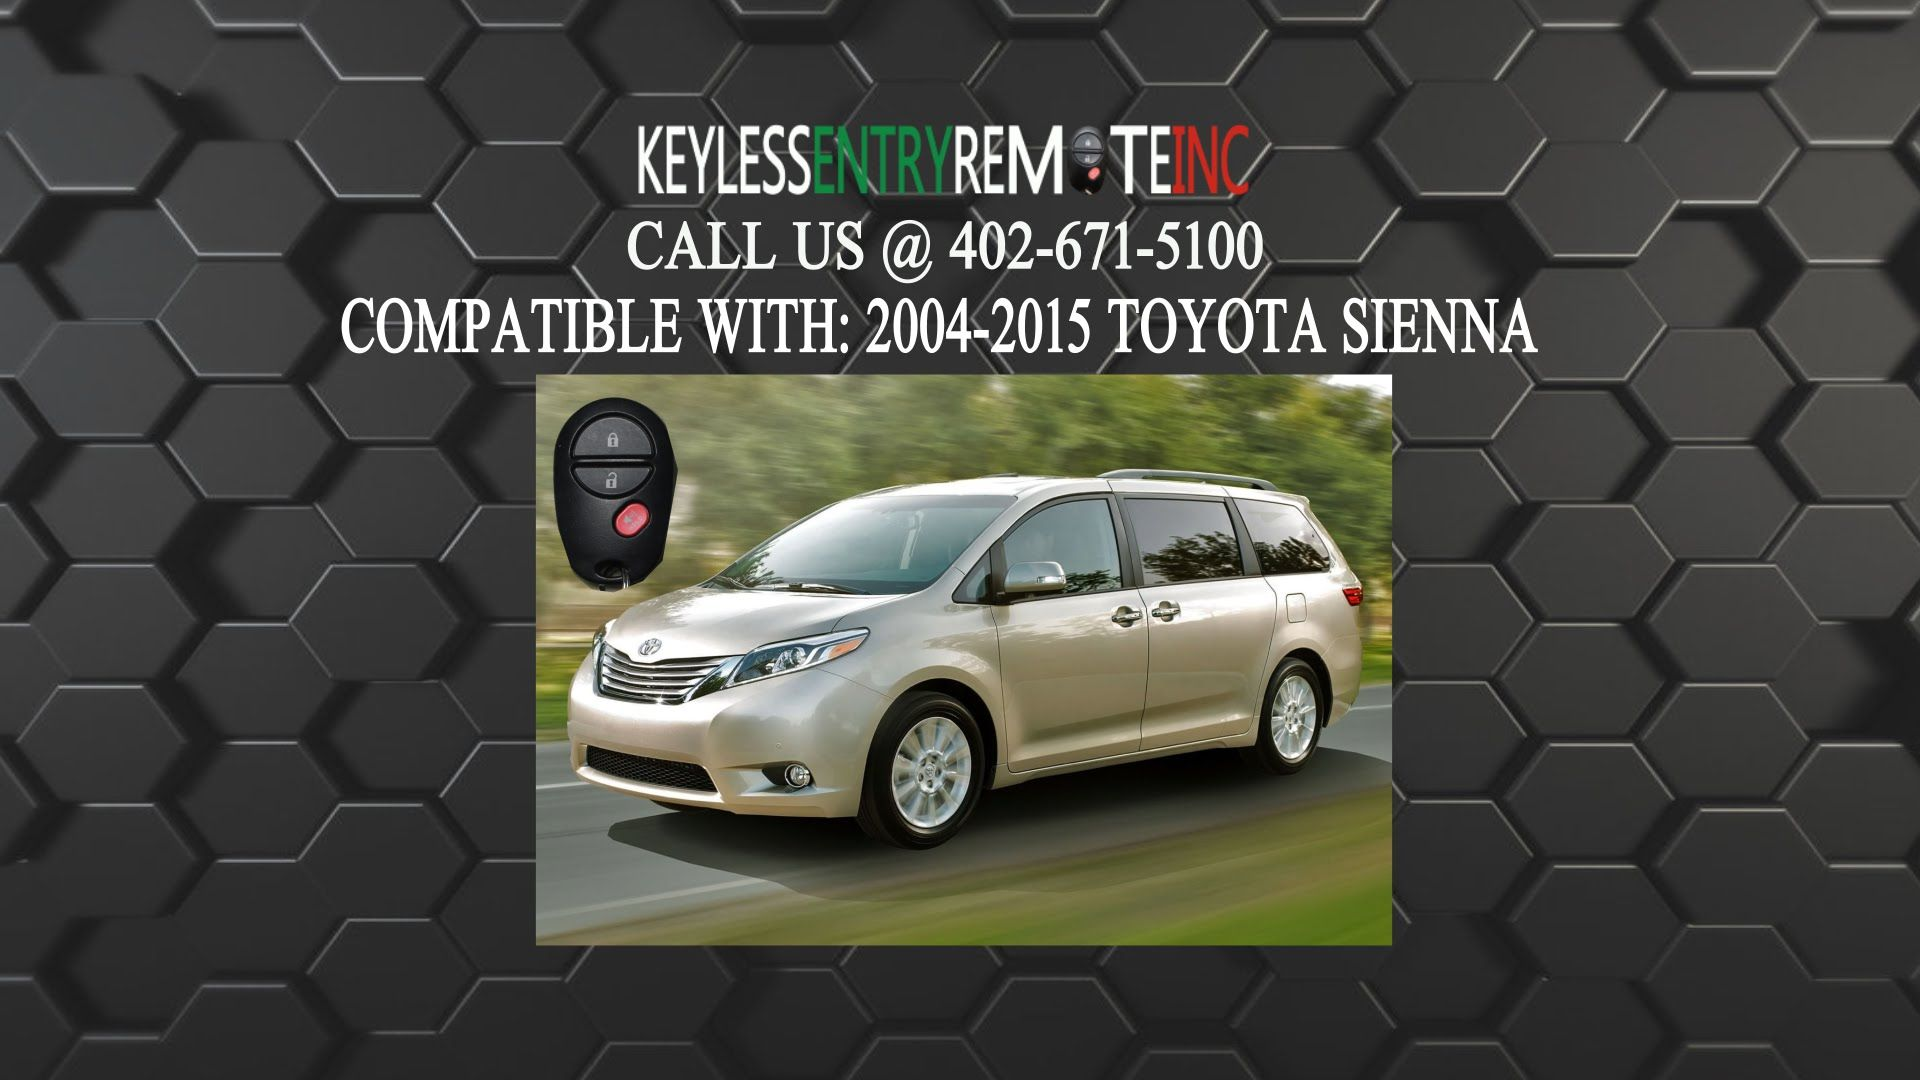 How To Replace A Toyota Sienna Key Fob Battery 2004 2015